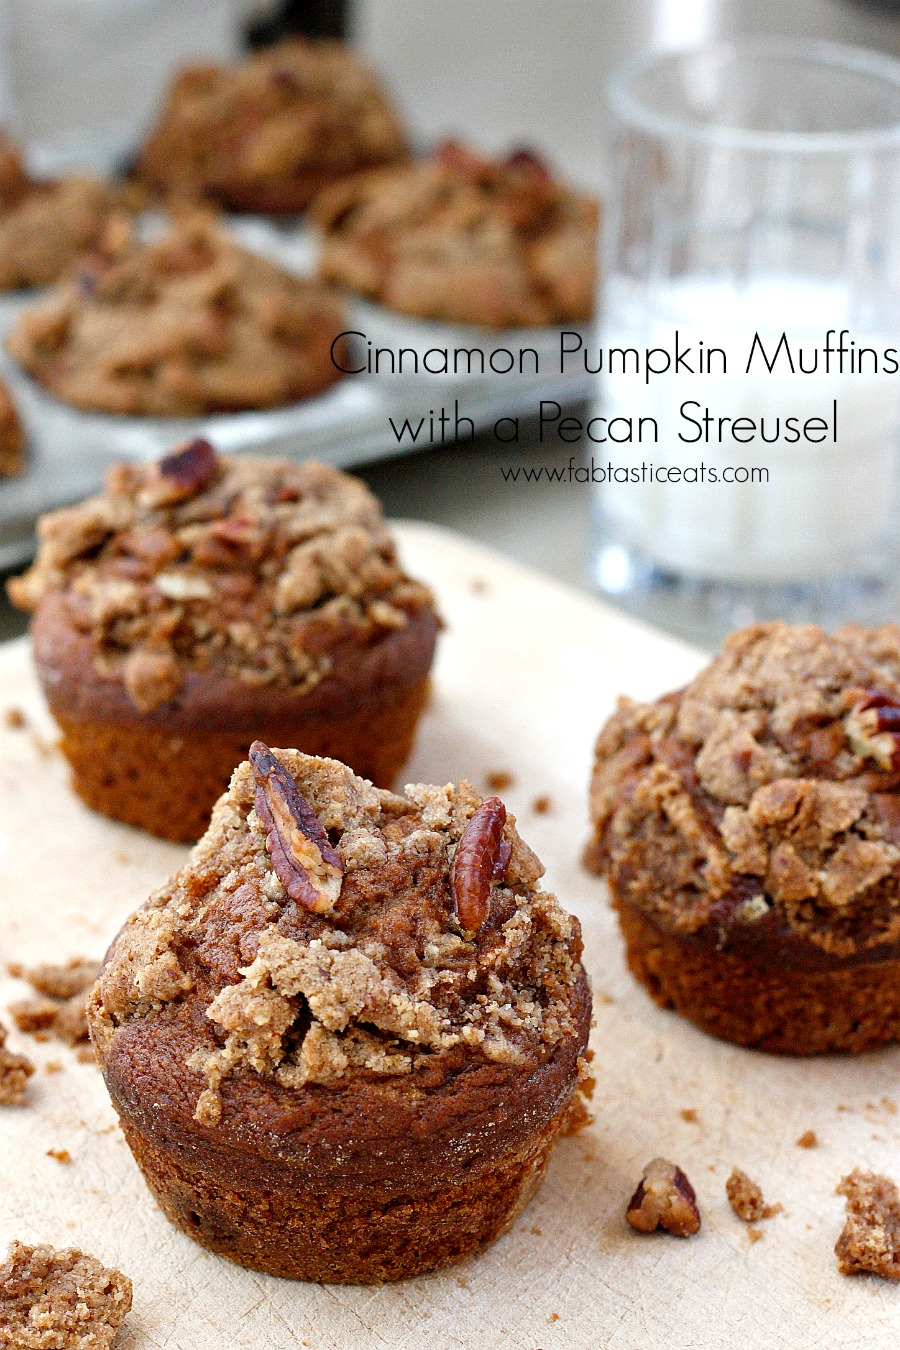 ... pecan streusel orange spice pumpkin muffins with pecan streusel